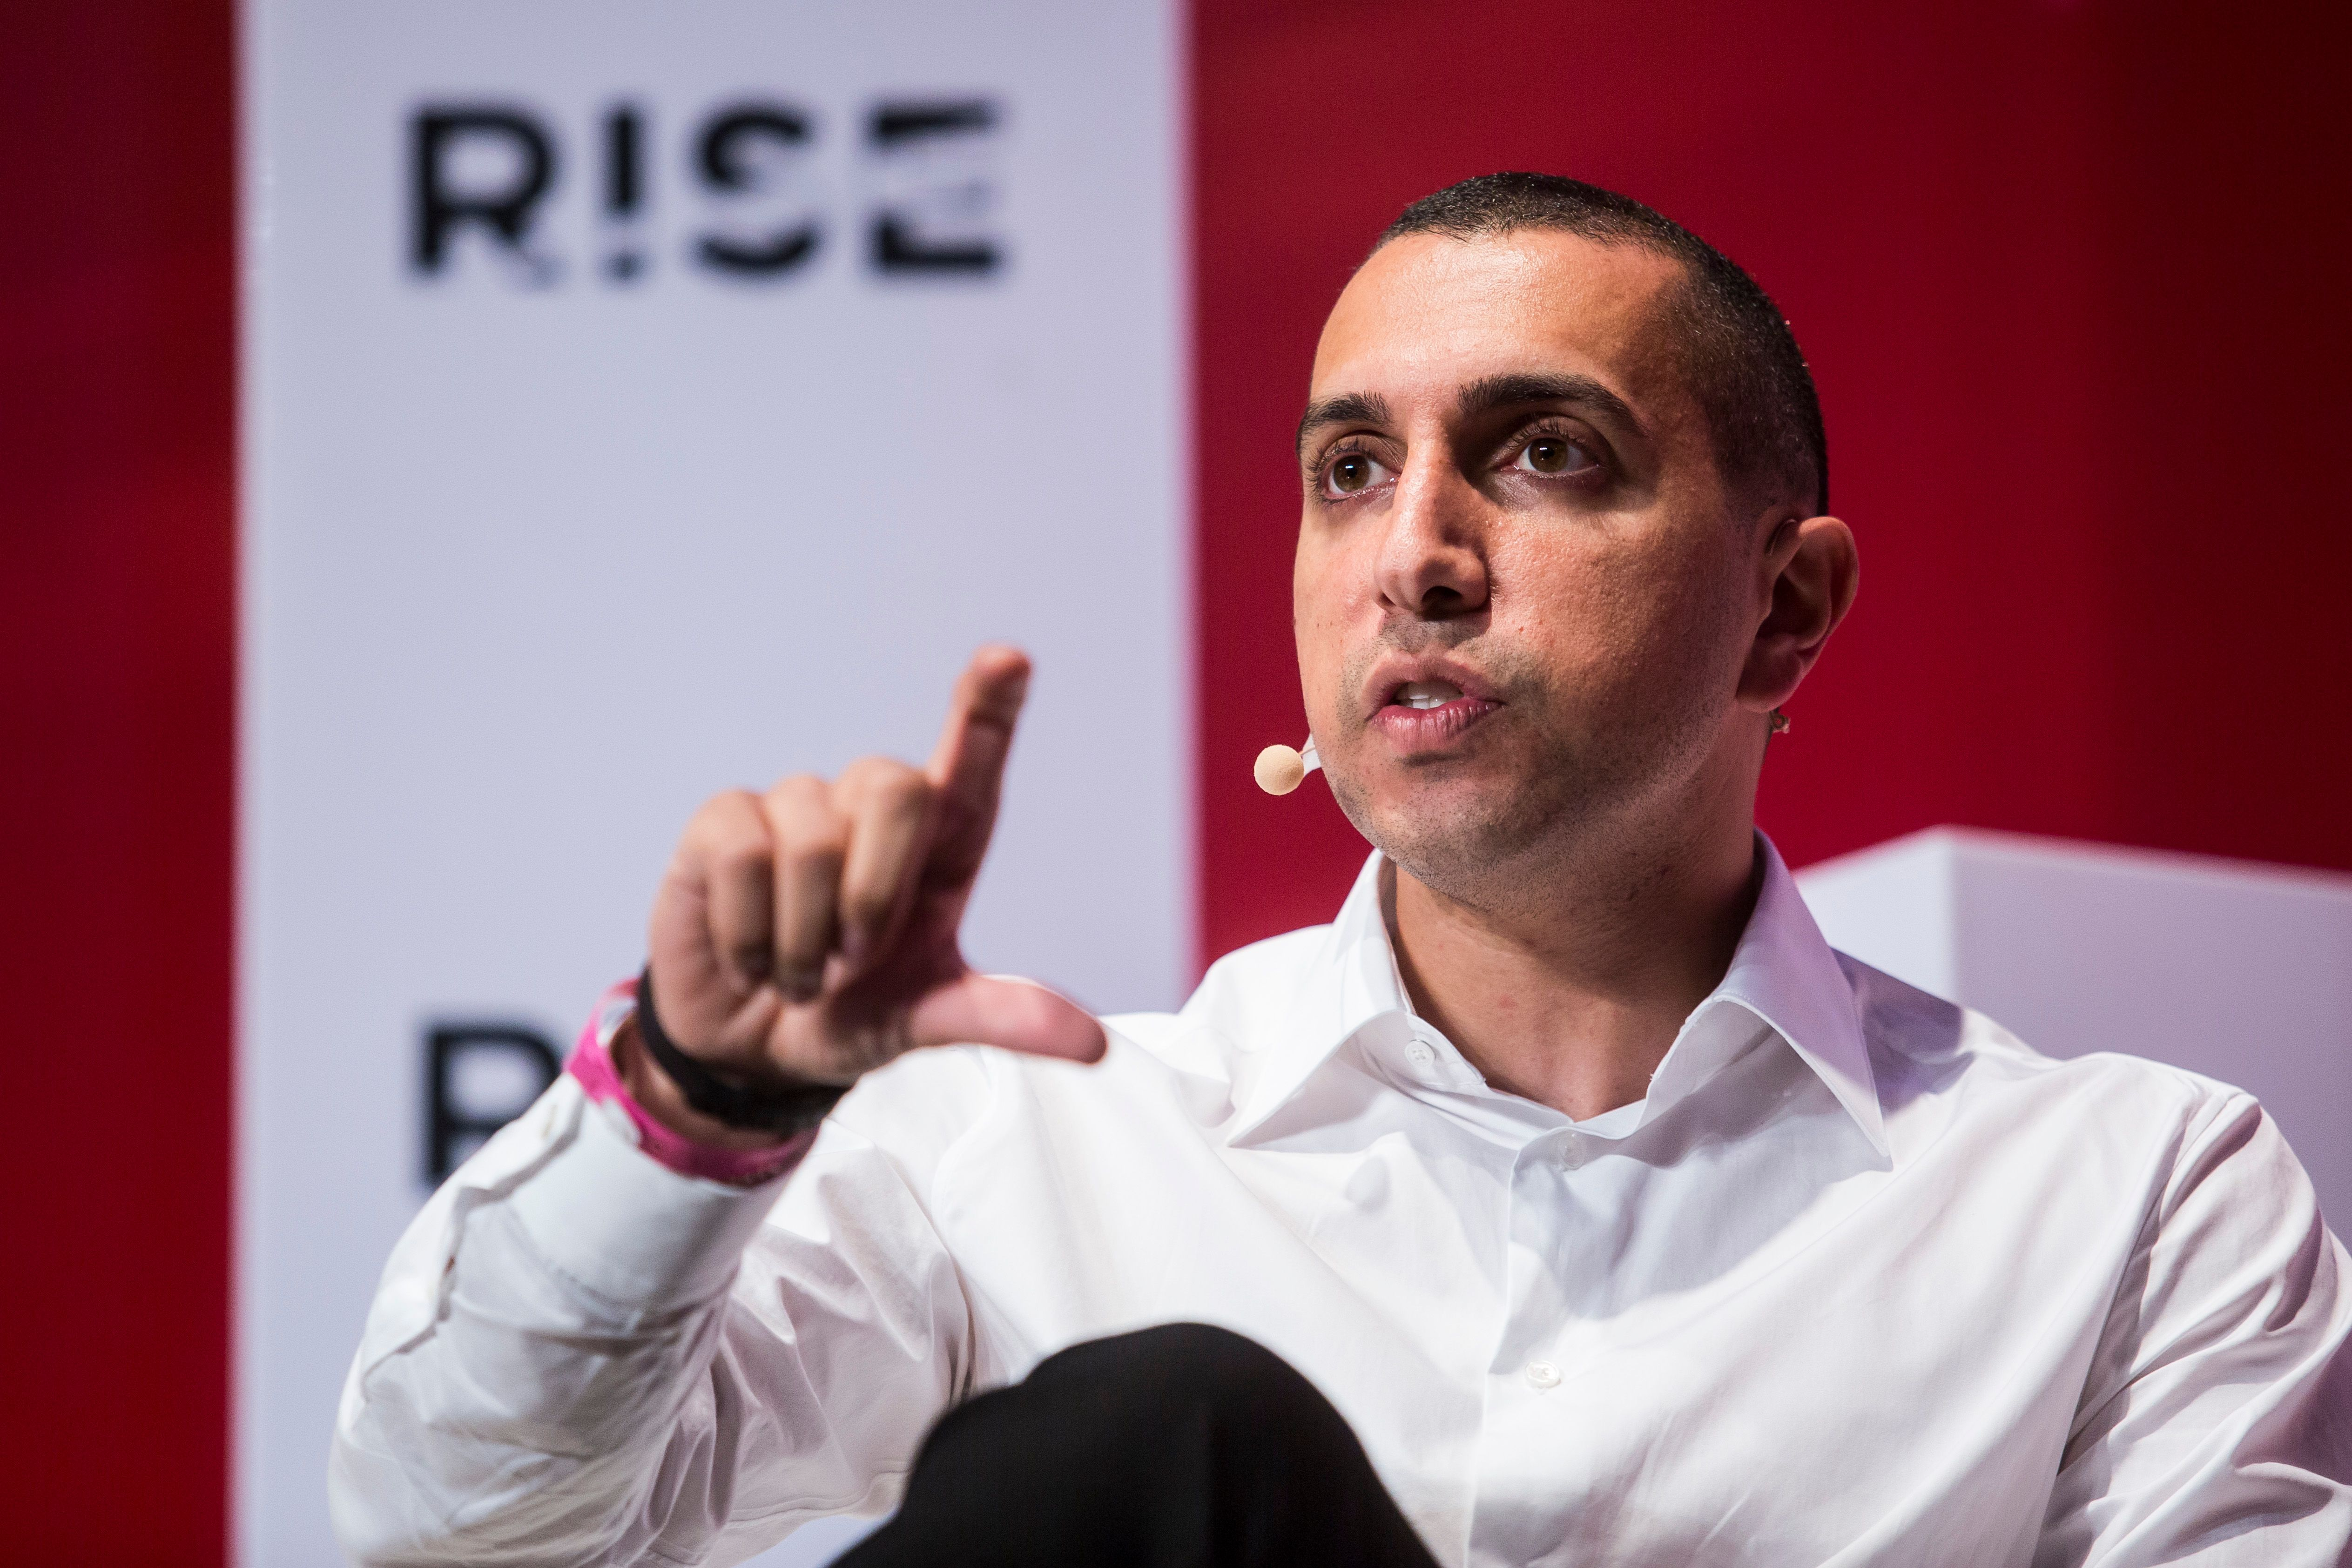 Sean Rad, founder of dating app Tinder, speaks at the RISE Technology Conference in Hong Kong on July 11, 2018.